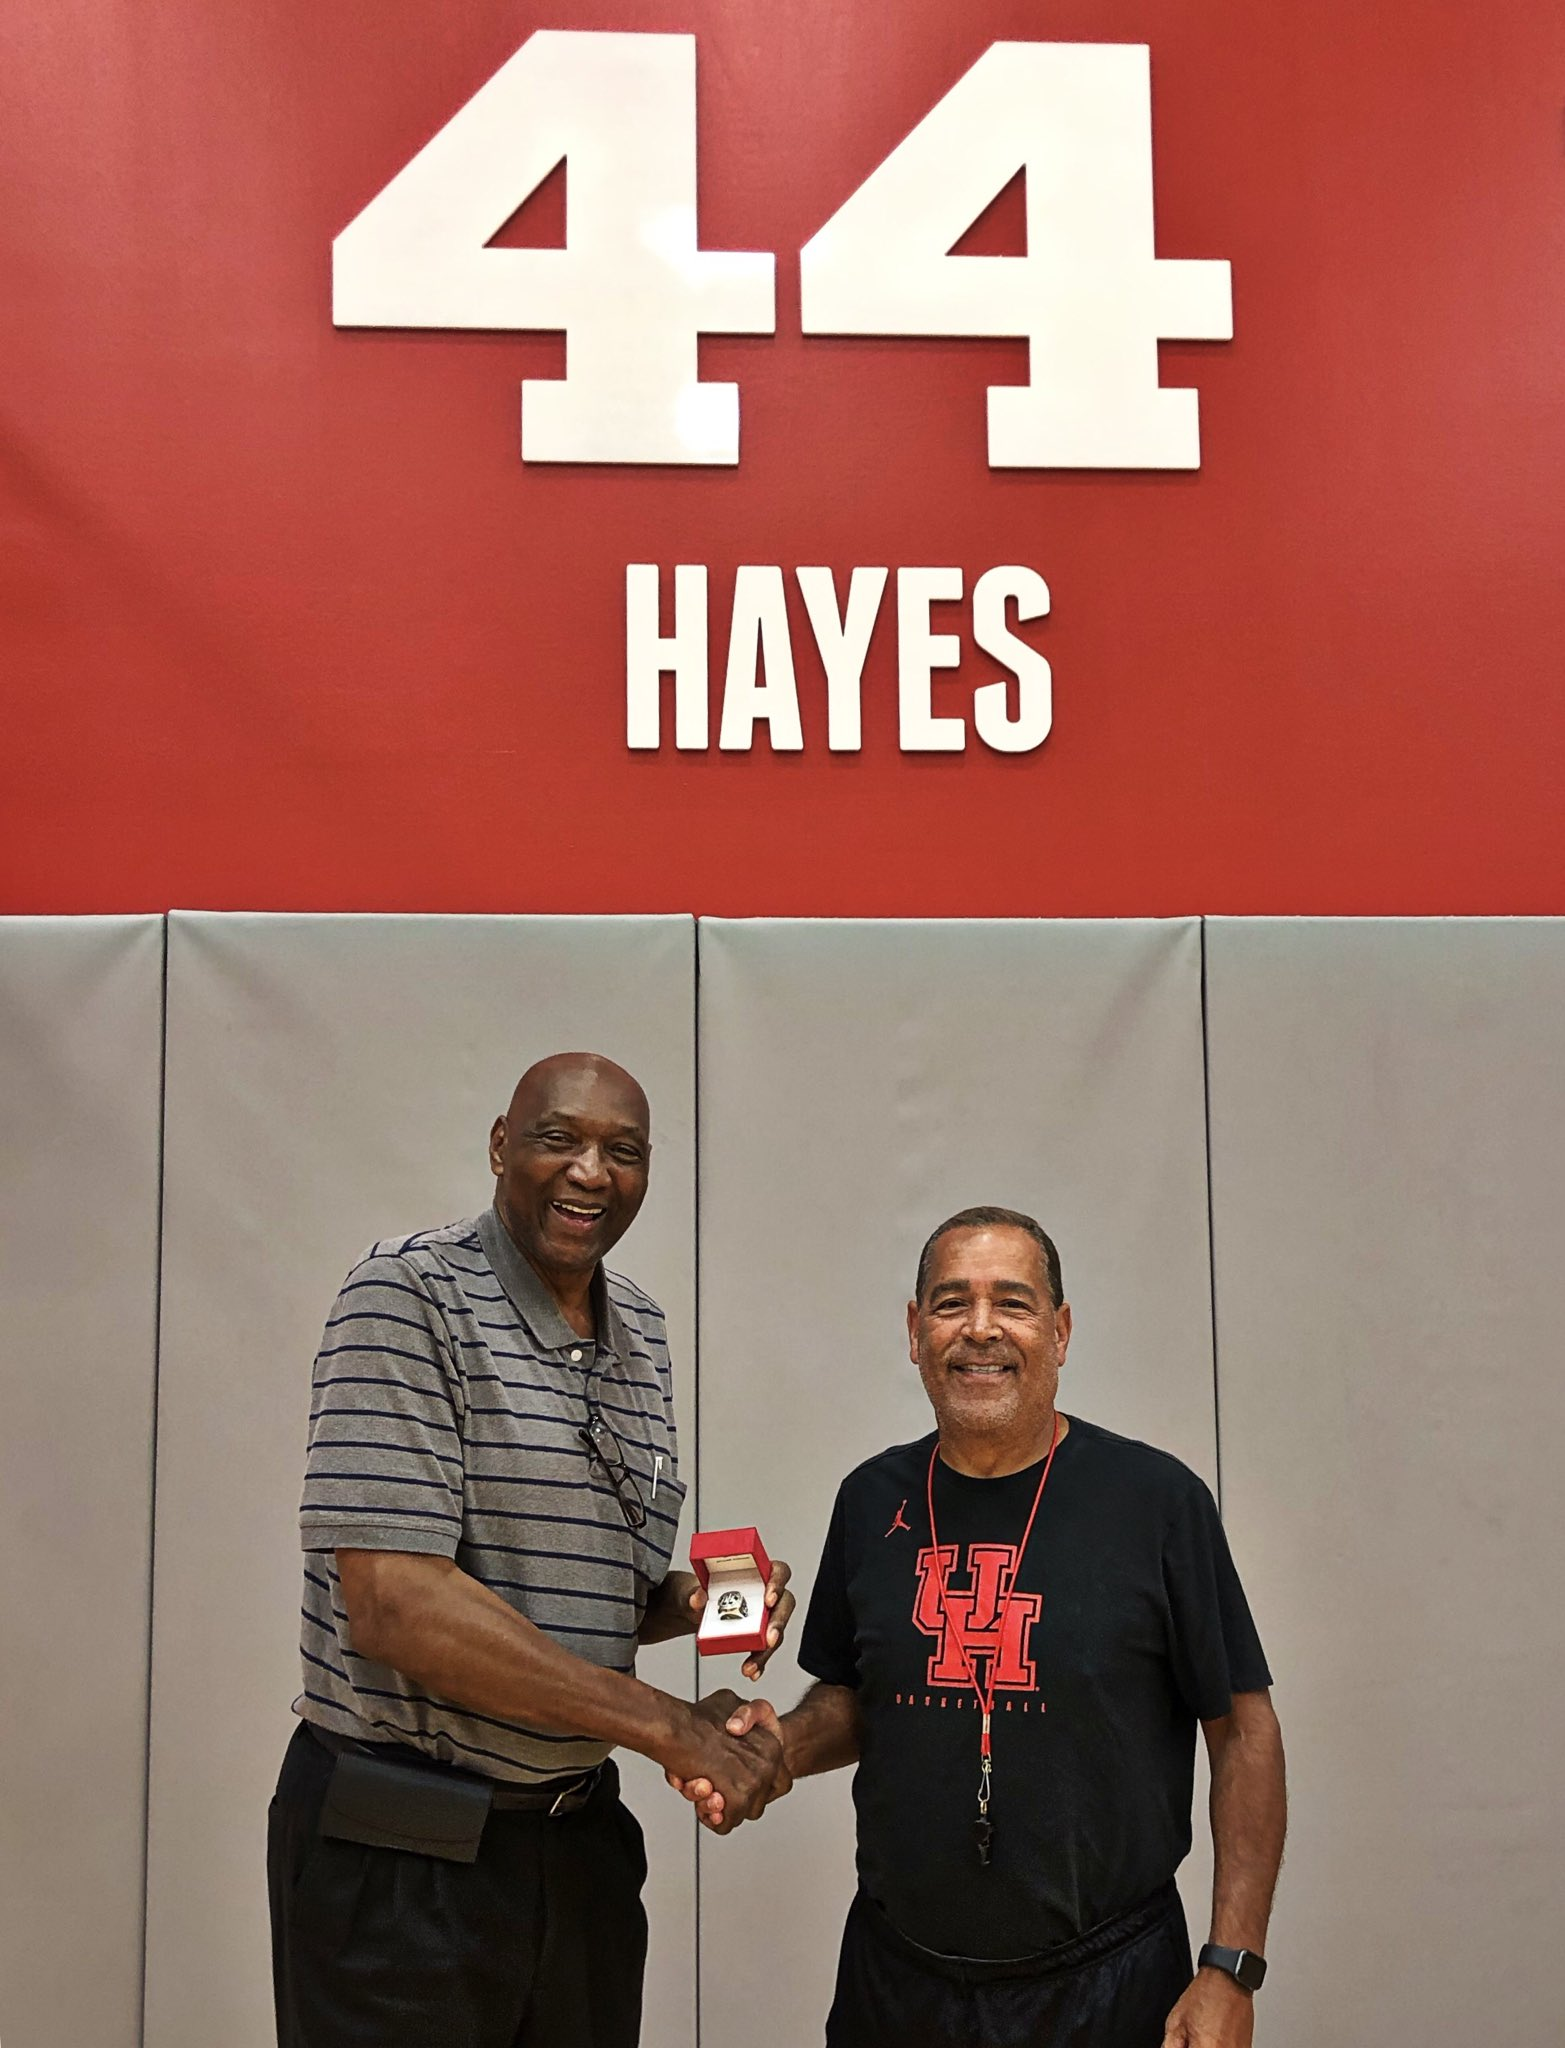 Houston Cougars NCAA Basketball: Can't think of a better place for @Hoophall famer @ElvinHayes44 to receiv...